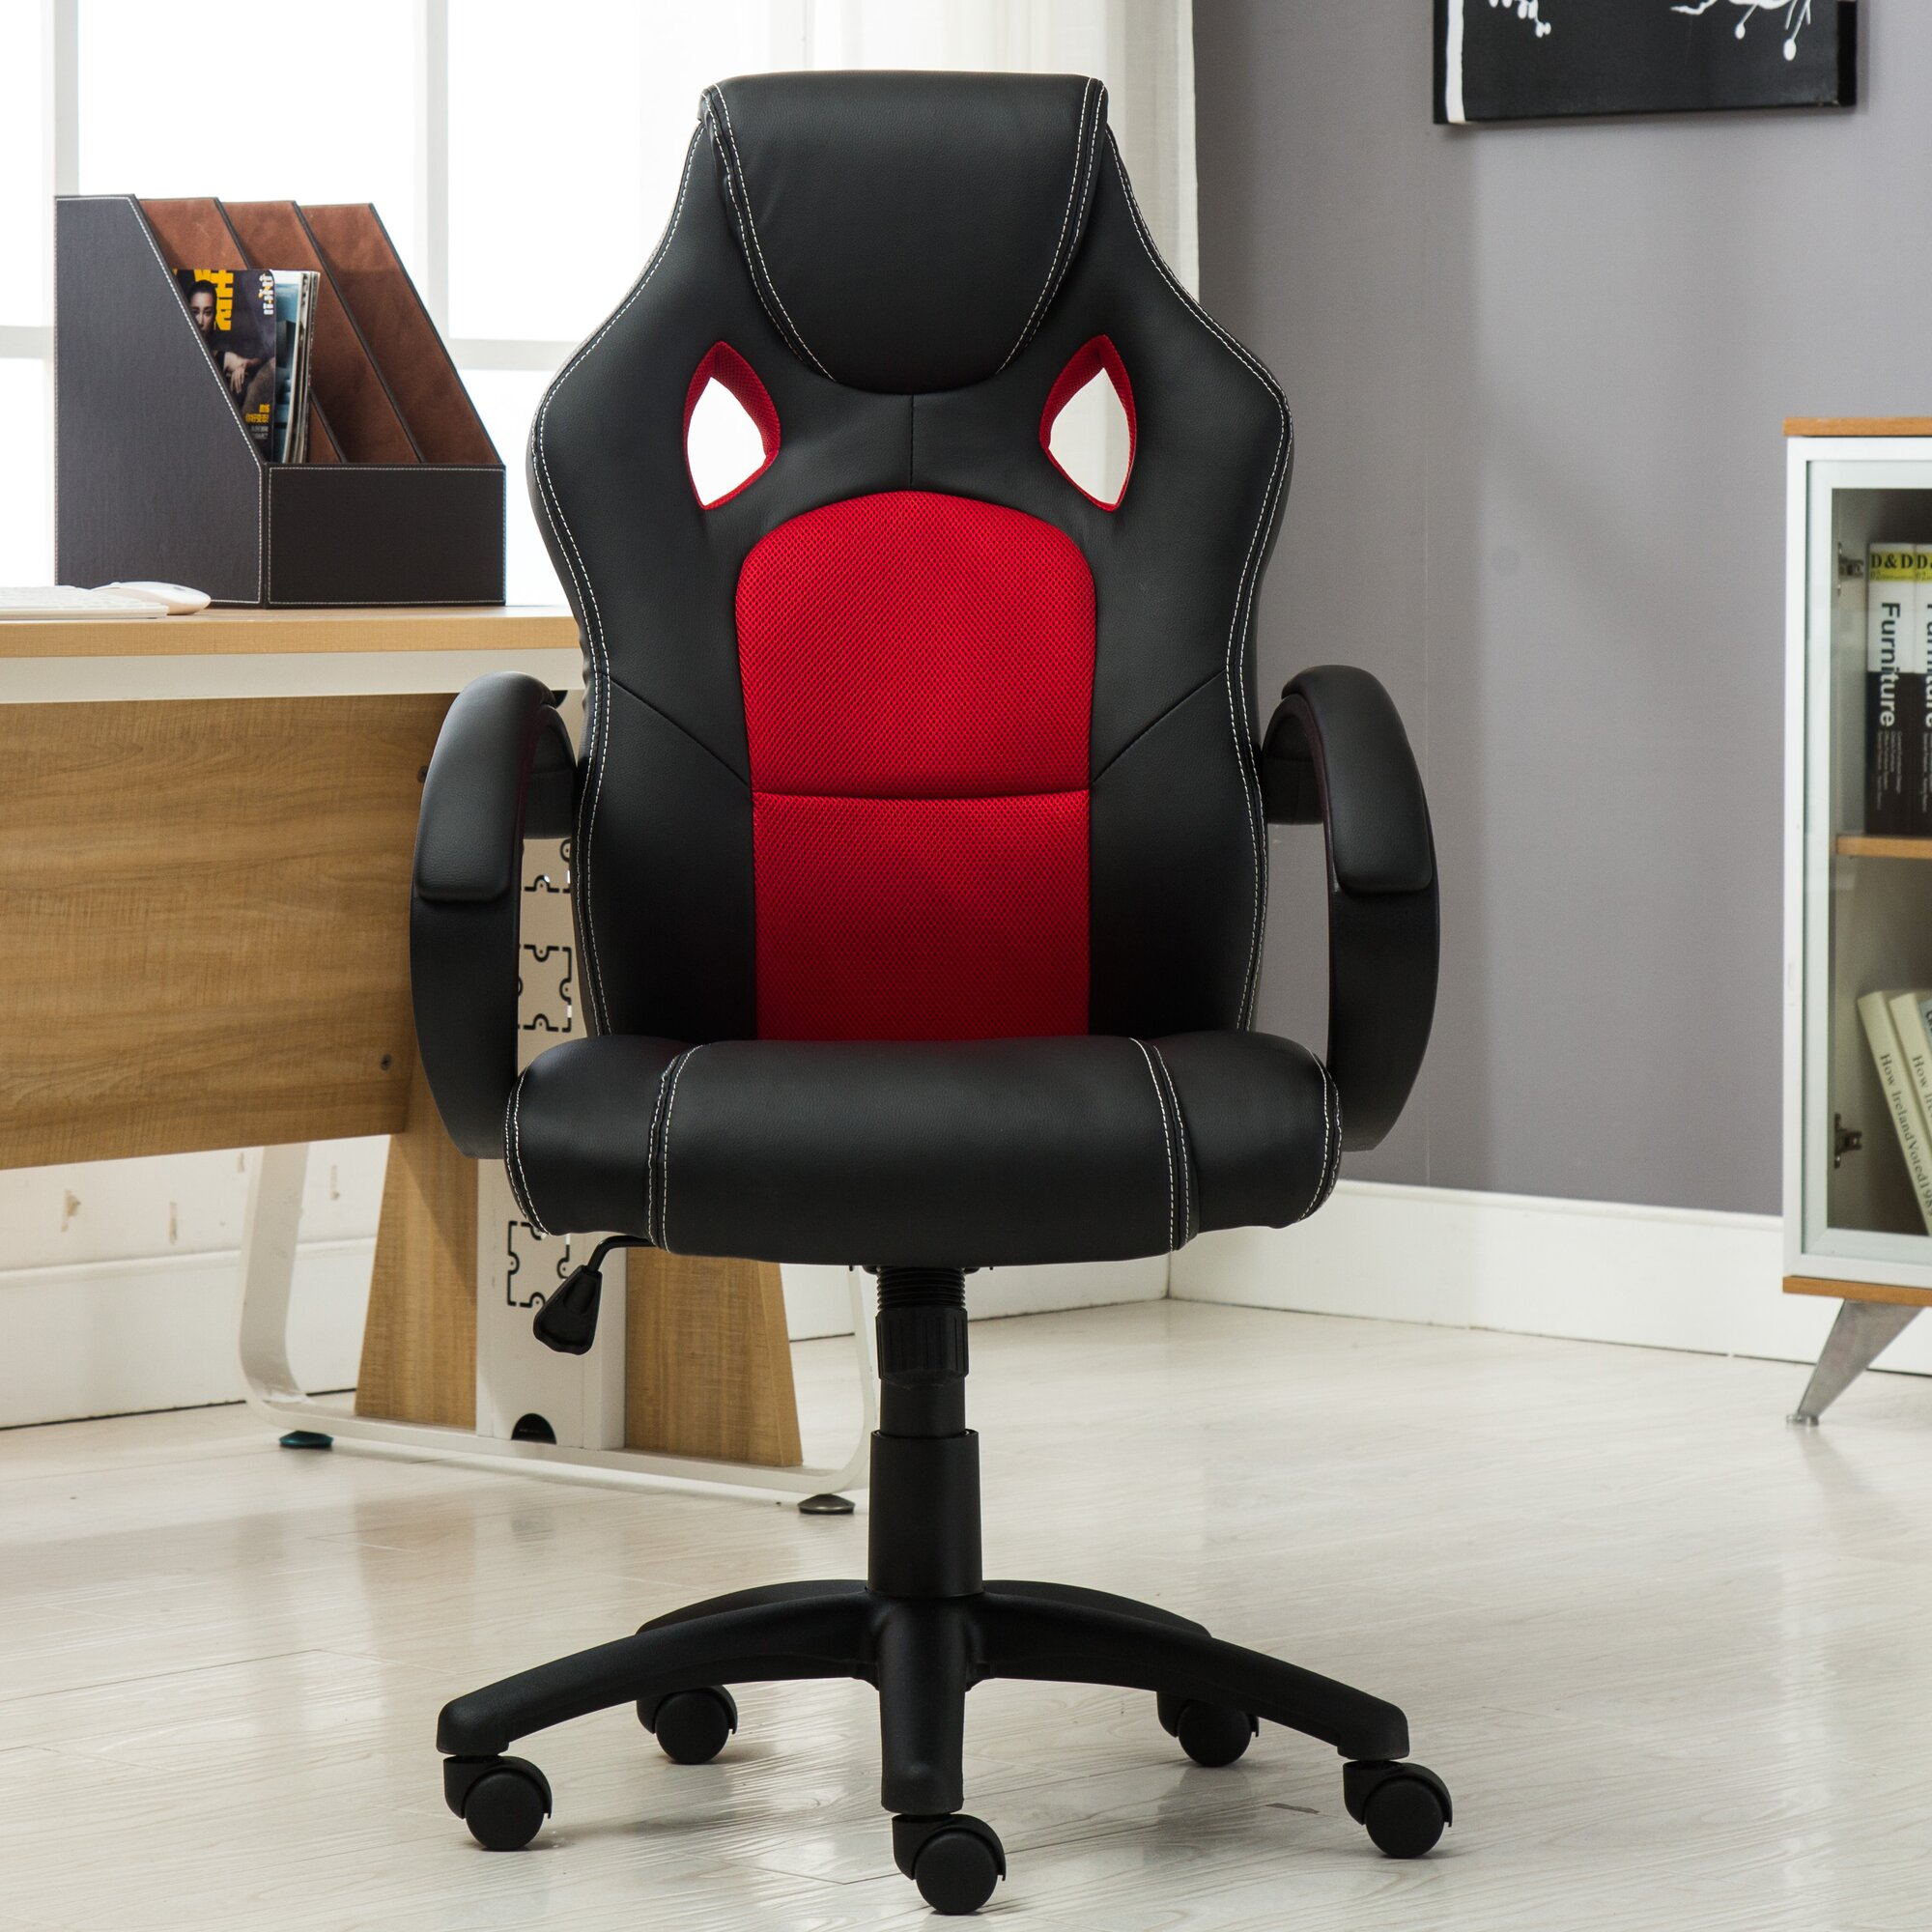 Cool Gaming Chairs Elegant Vision e Chair Ergonomic Gaming And